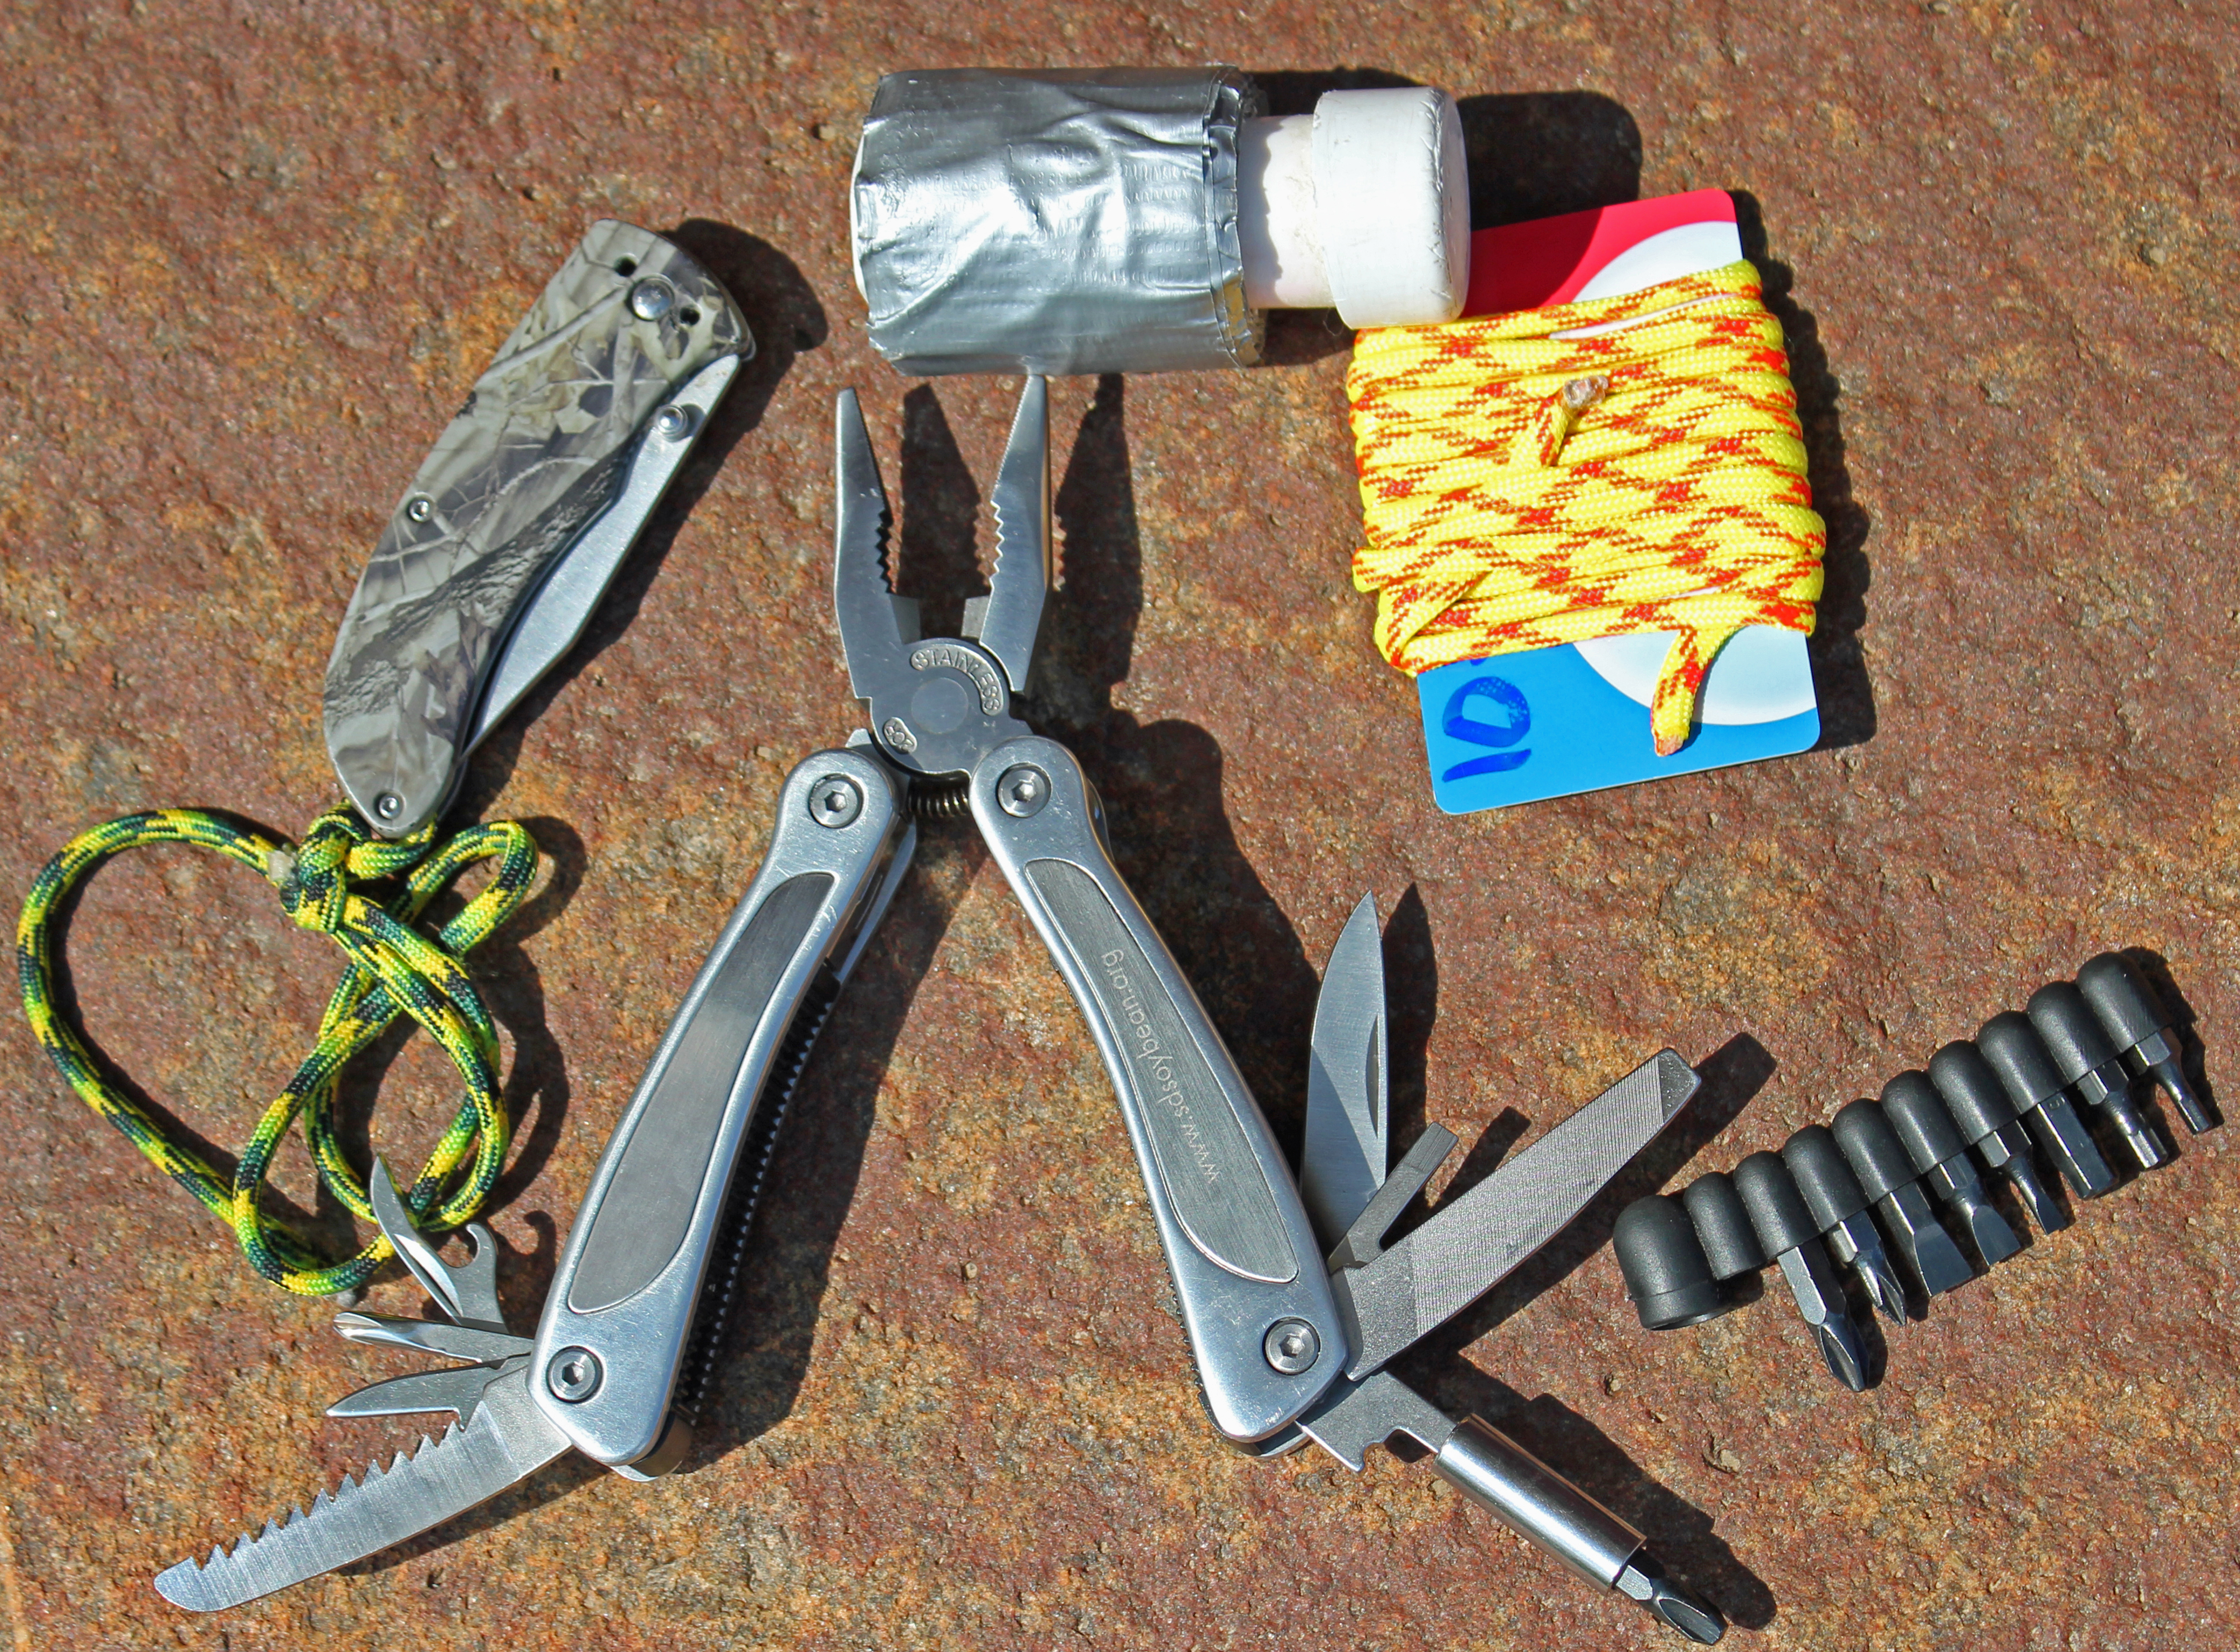 Picture of Repair Kit and Tools